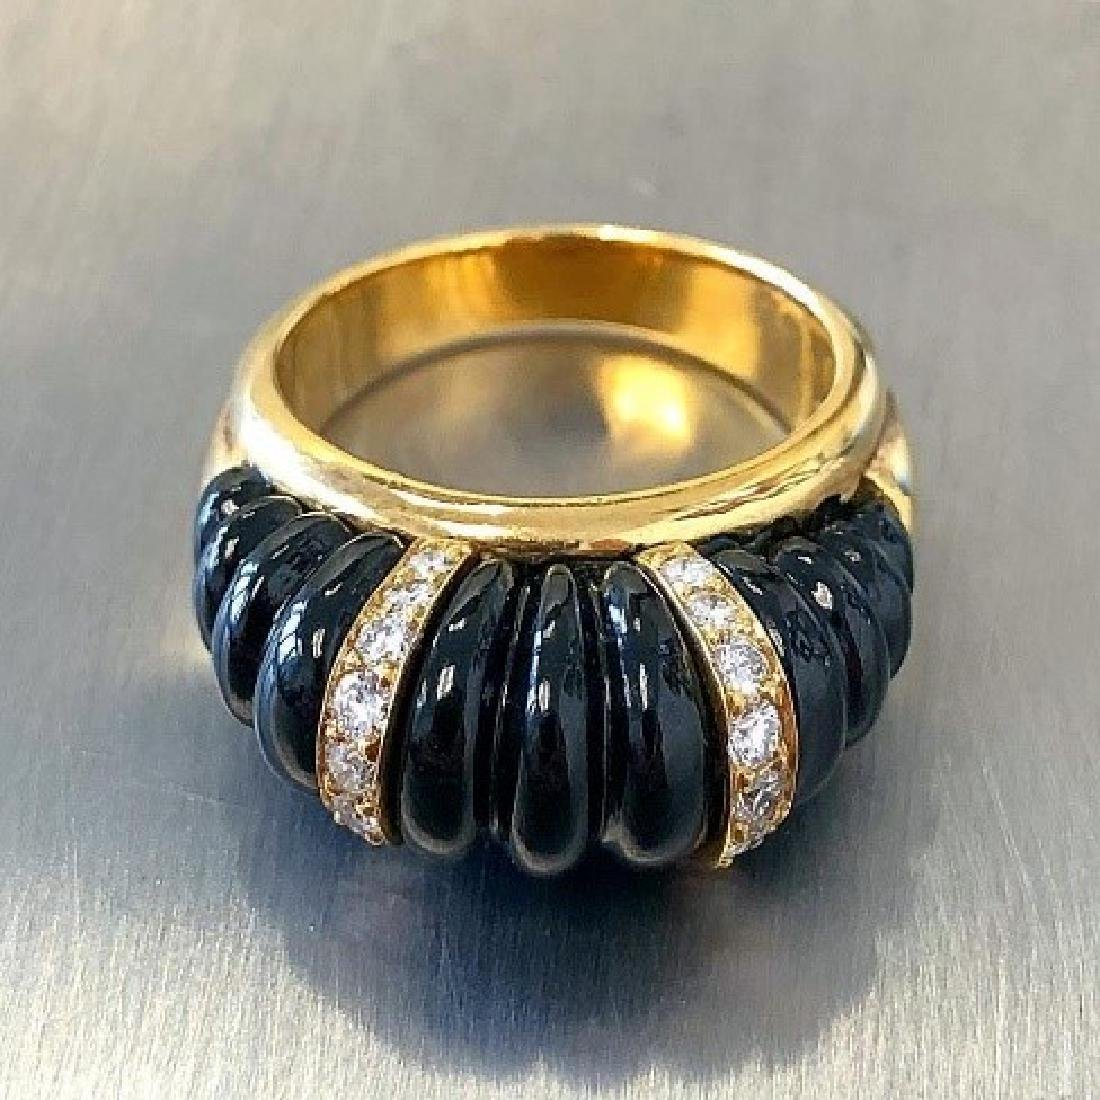 Carvin French Carved Onyx Ring.